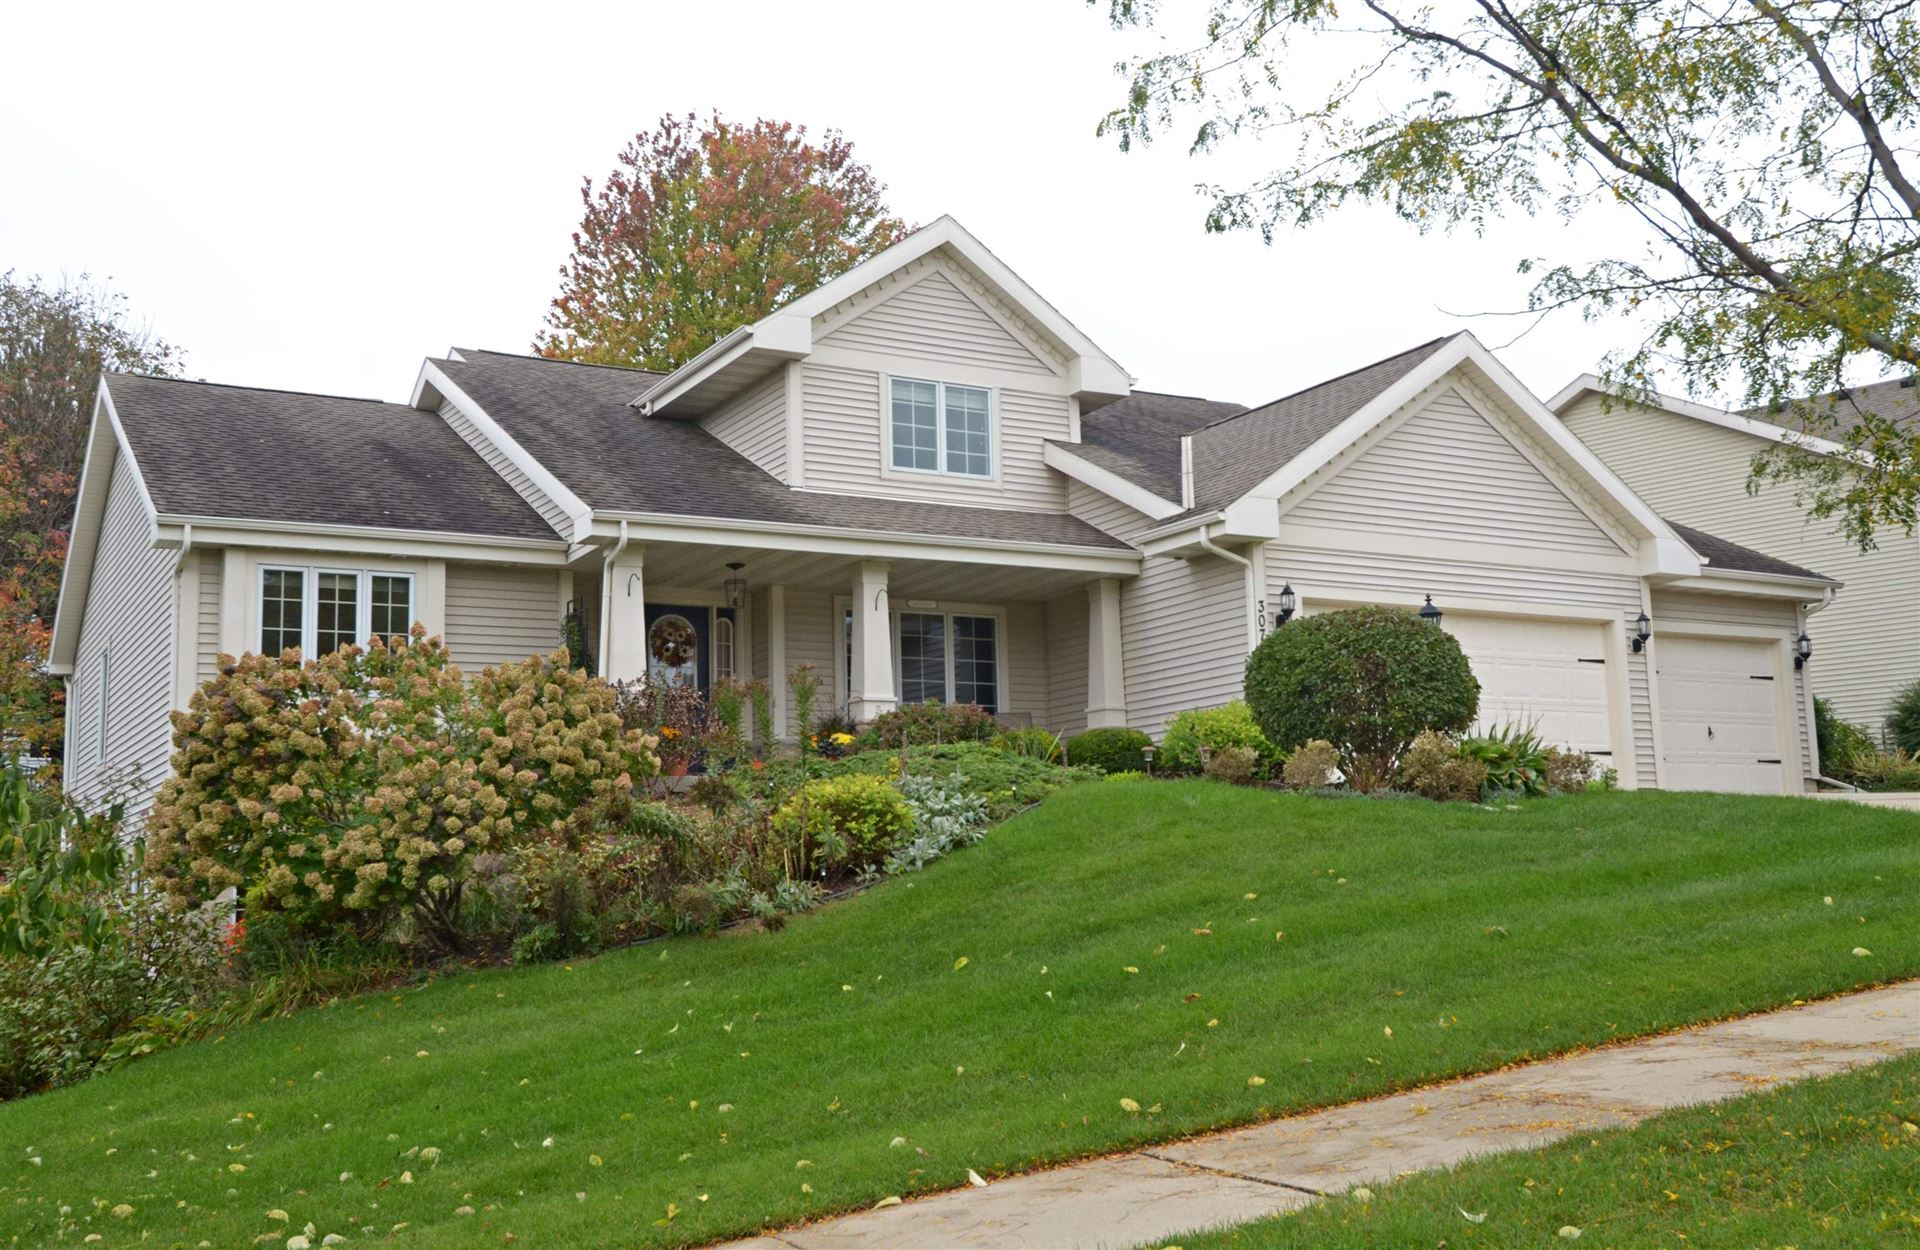 3071 Yarmouth Greenway Dr, Fitchburg, WI 53711 - #: 1921907